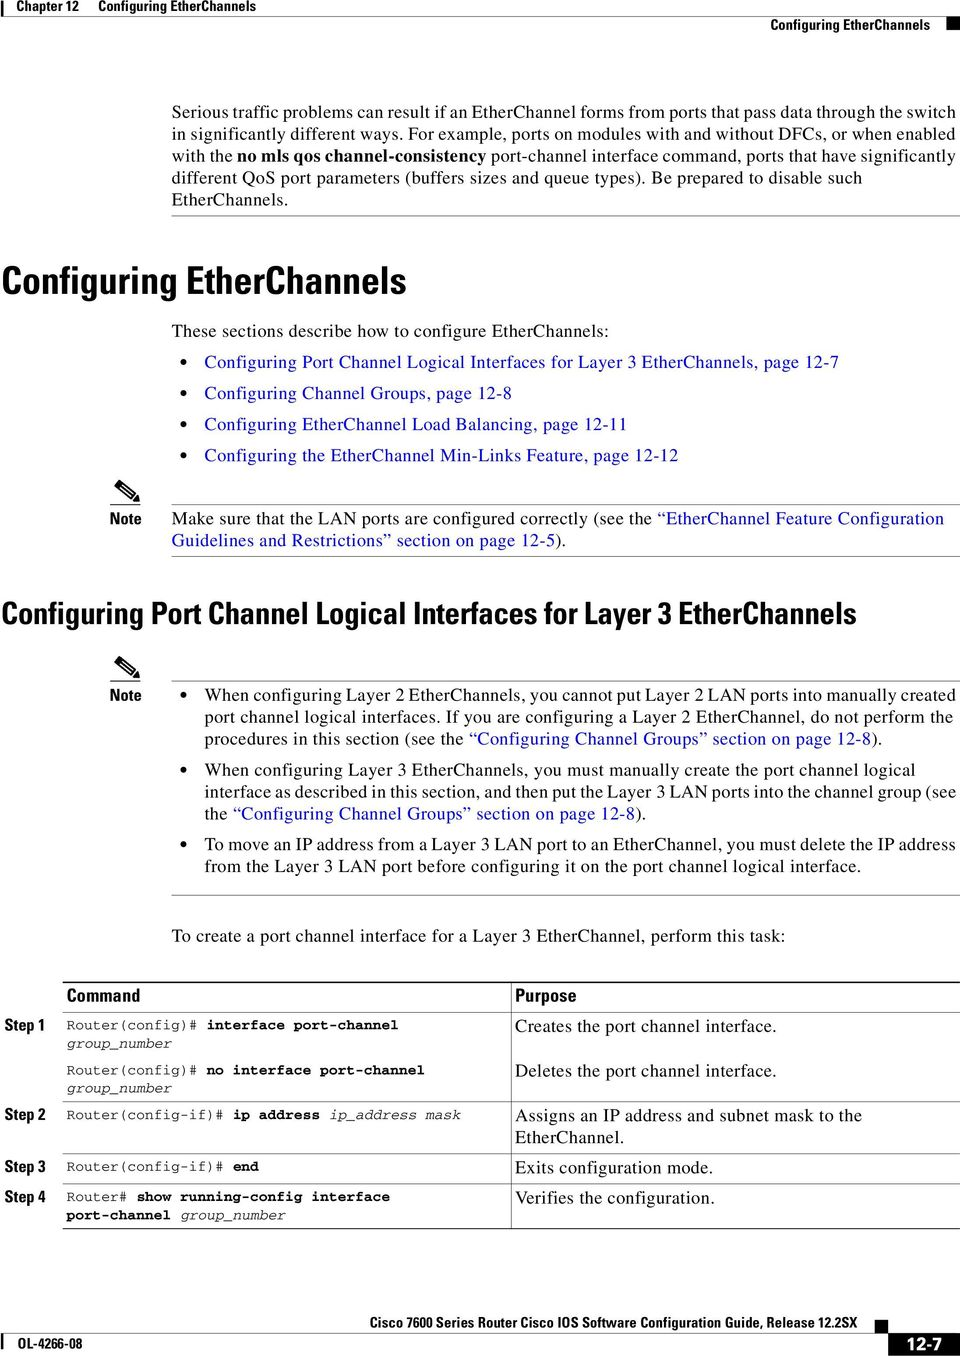 parameters (buffers sizes and queue types). Be prepared to disable such EtherChannels.